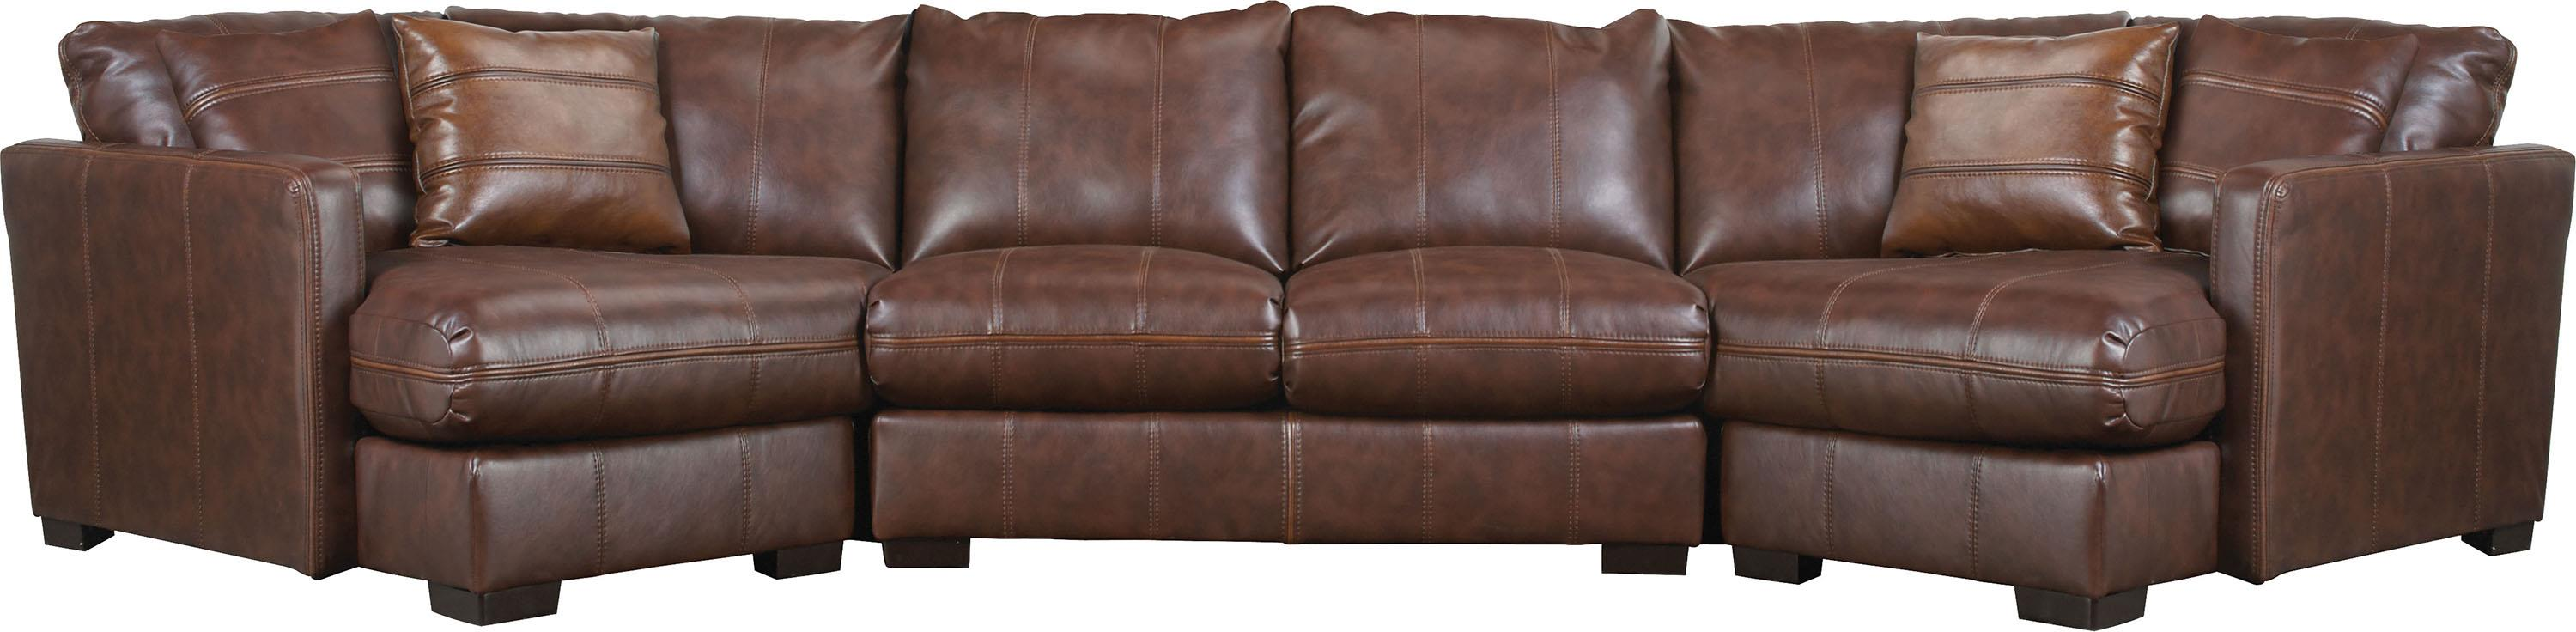 Four Seat Sectional Sofa by Jackson Furniture